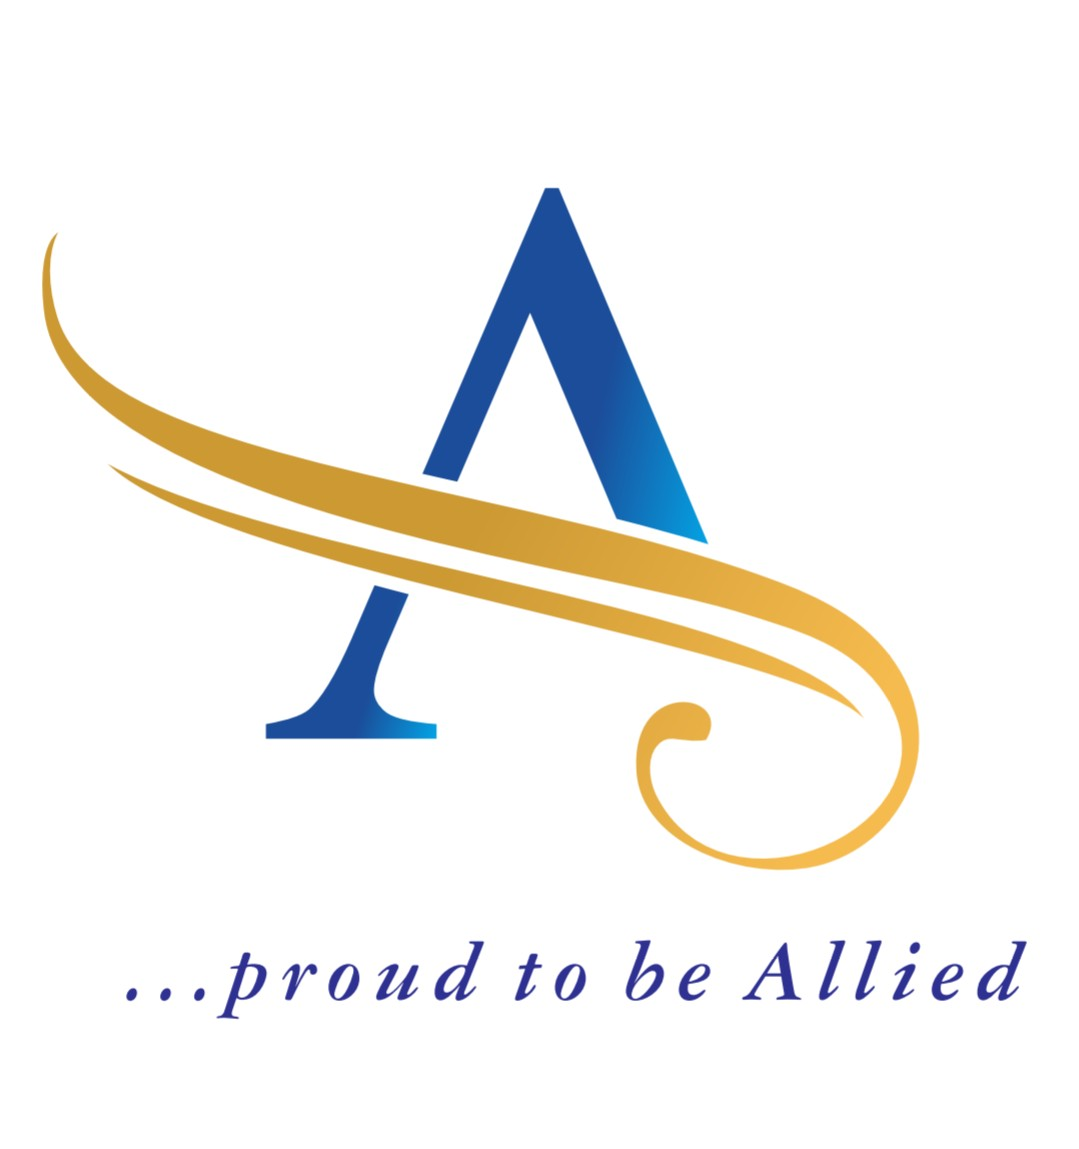 allied-club-logo